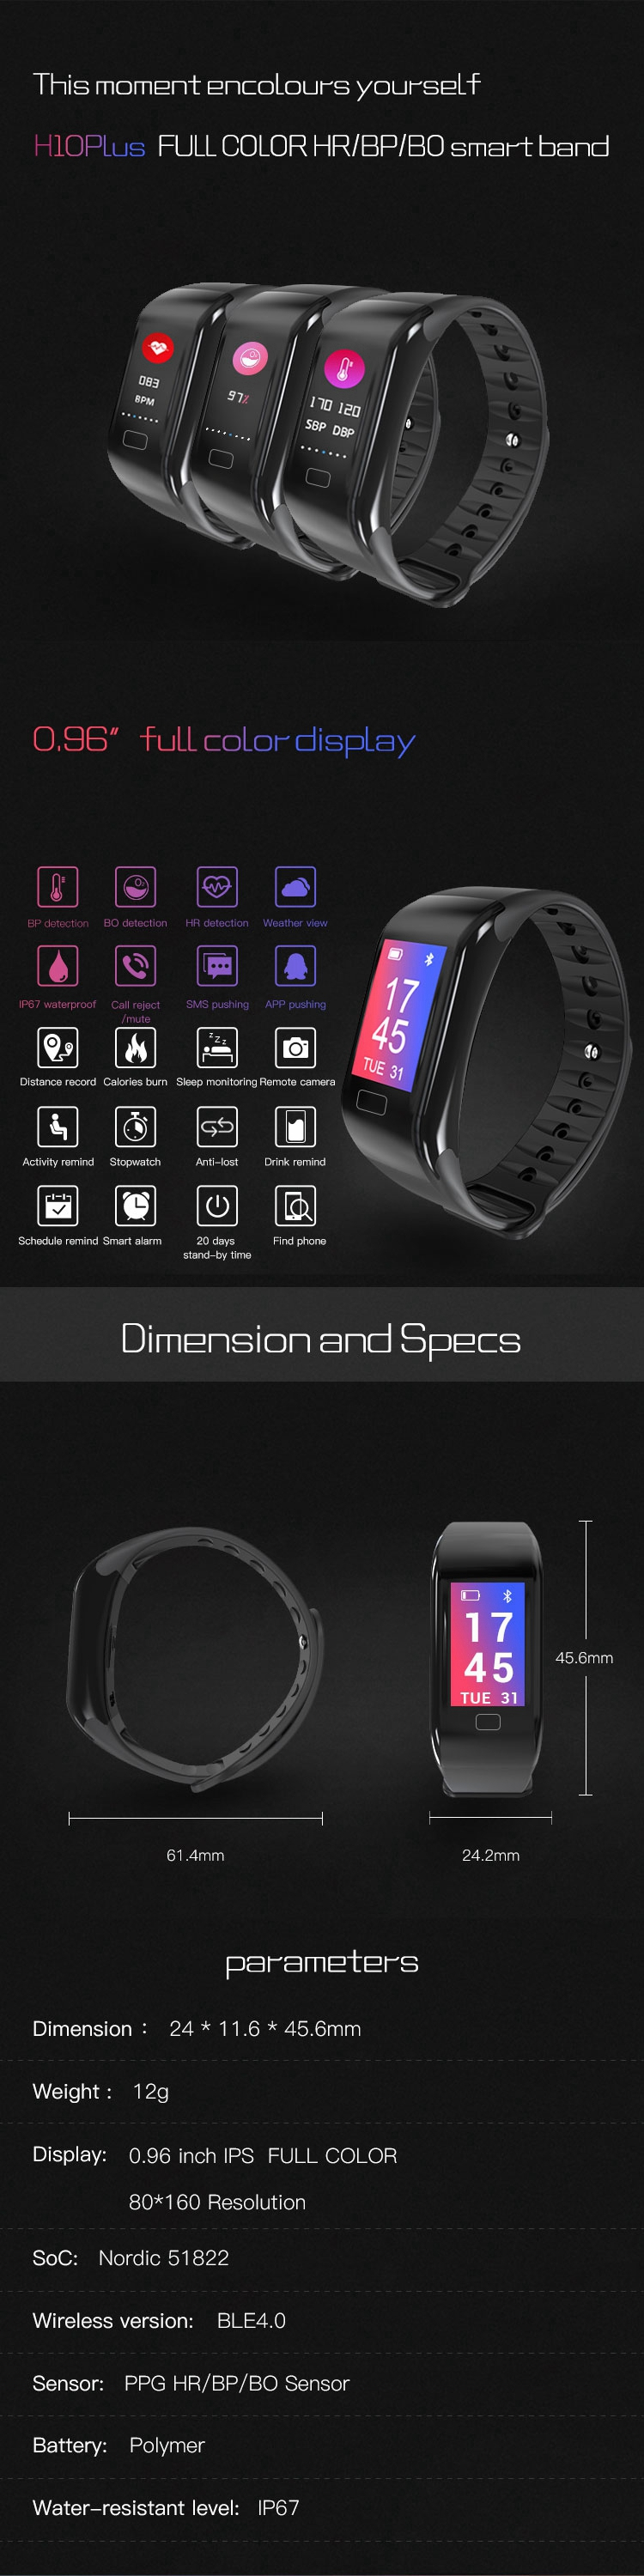 2018 shenzhen full color screen smartband with heart rate monitor .jpg